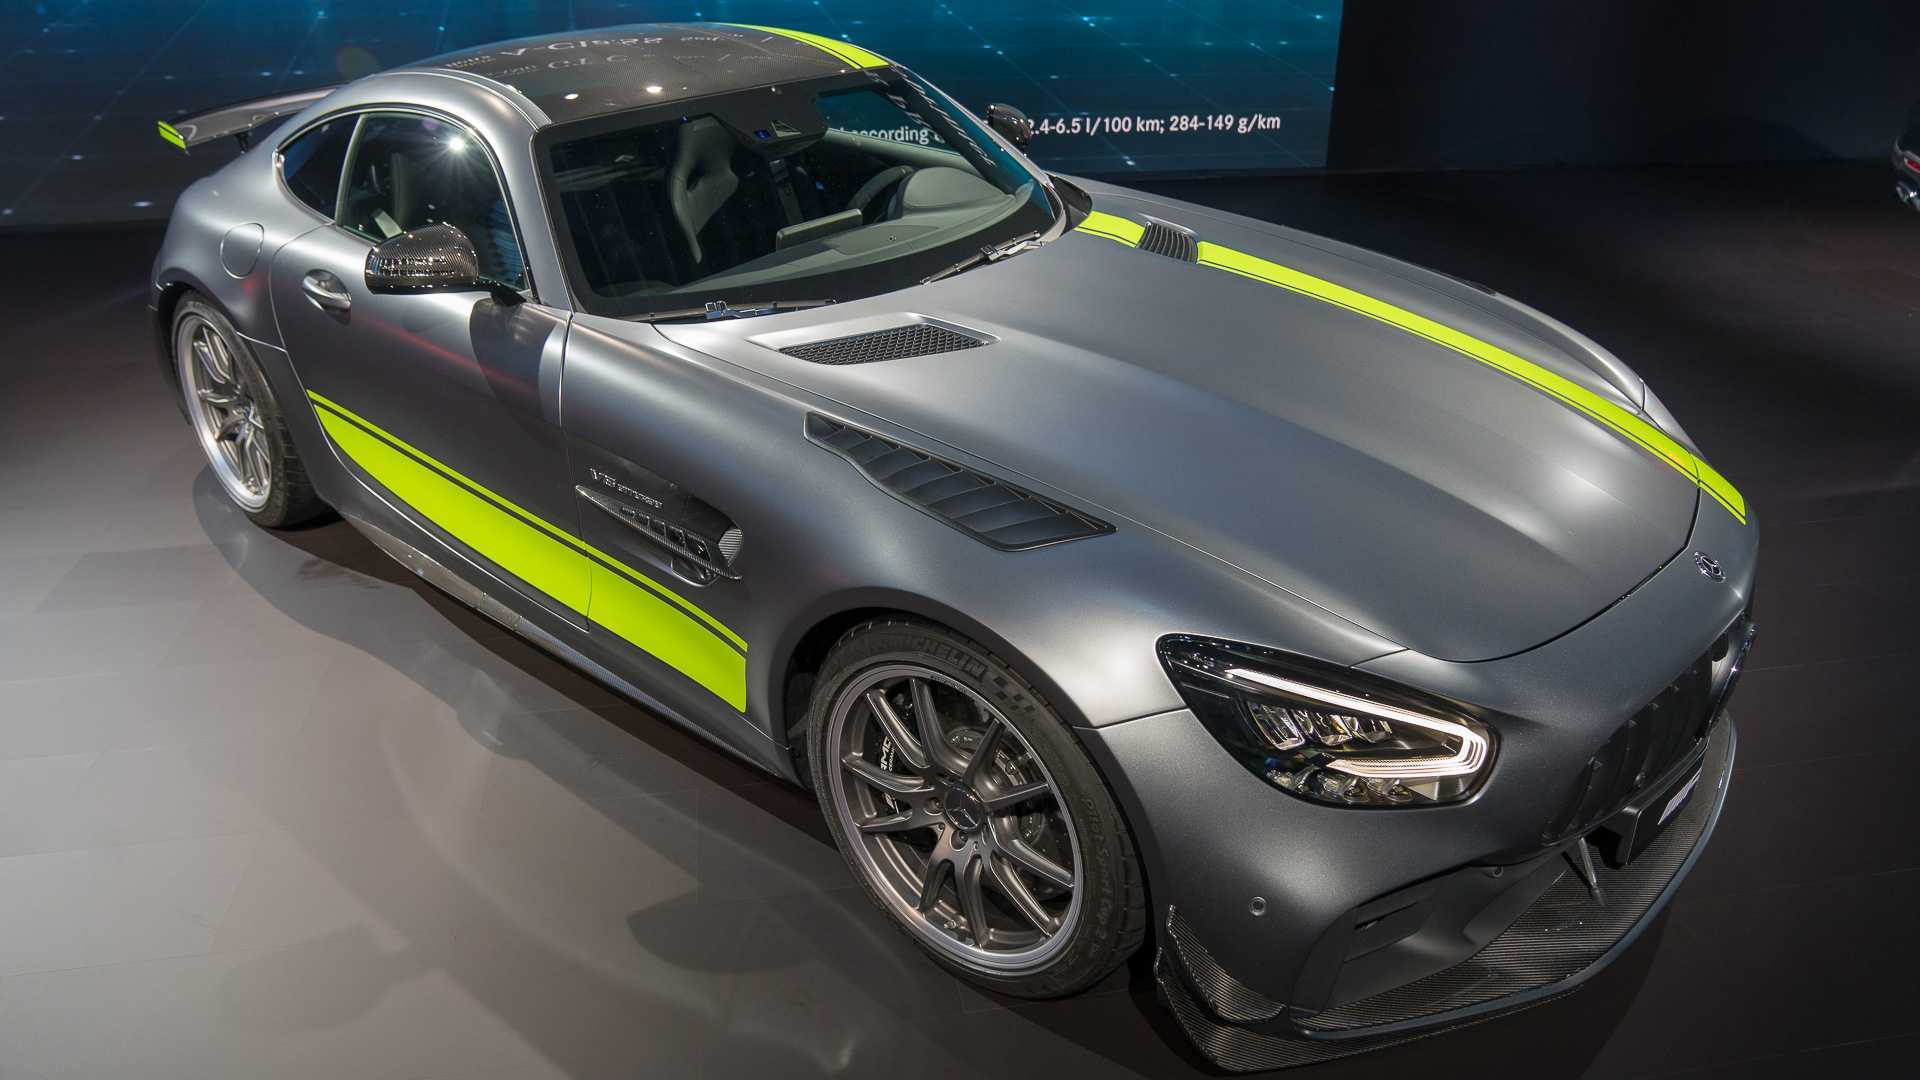 29 Great Mercedes 2020 Amg Gt Wallpaper for Mercedes 2020 Amg Gt